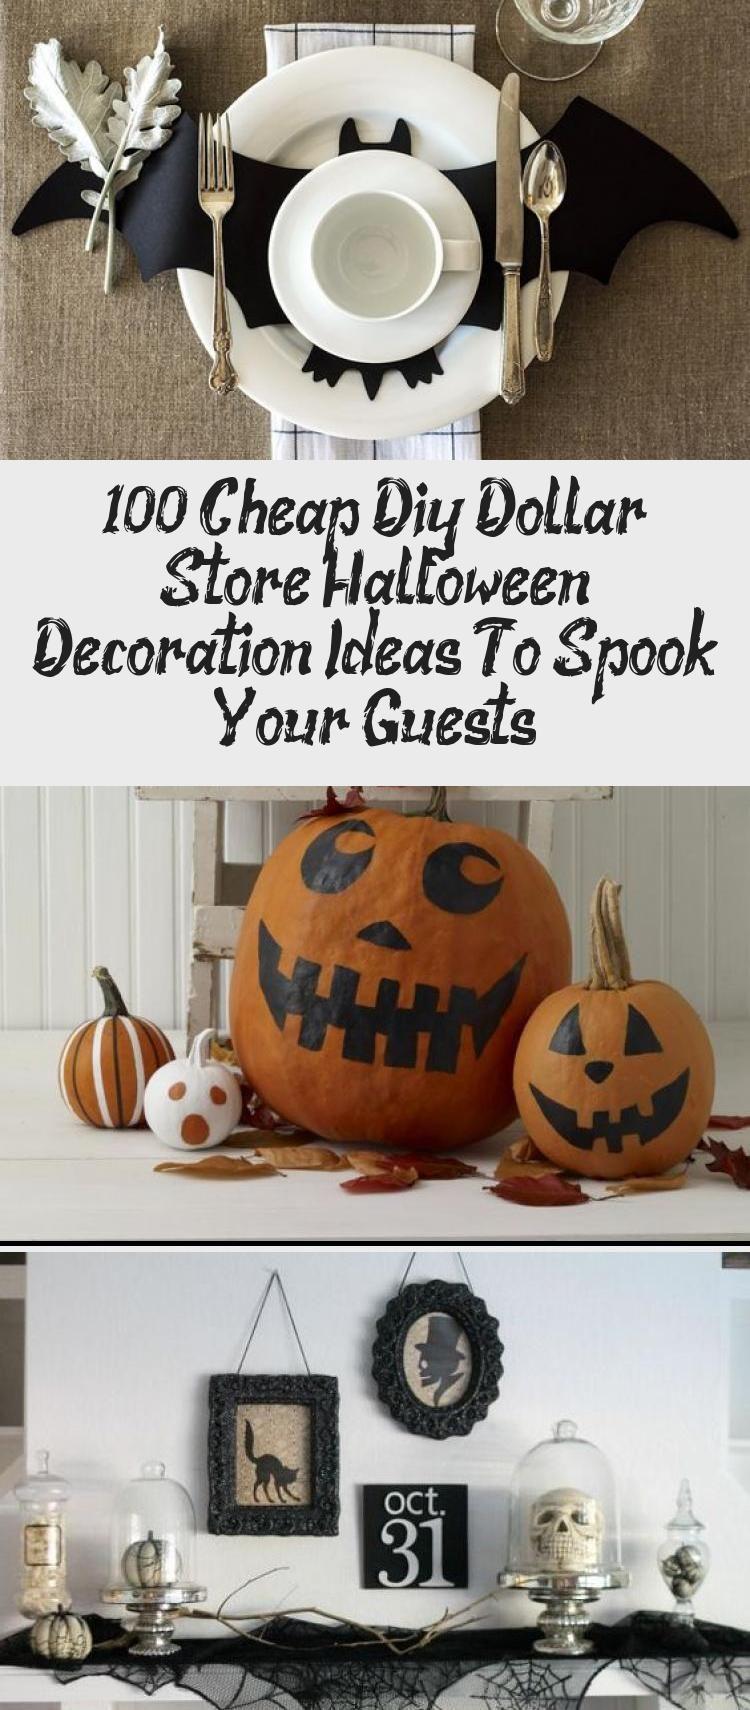 100+ Cheap Diy Dollar Store Halloween Decoration Ideas To Spook Your Guests #milliondollardip 100+ Cheap DIY Dollar Store Halloween Decoration ideas to spook your guests - Hike n Dip #halloweendecorationsDorm #Creativehalloweendecorations #halloweendecorationsManualidades #halloweendecorationsMaison #halloweendecorationsKitchen #cheapdiyhalloweendecorations